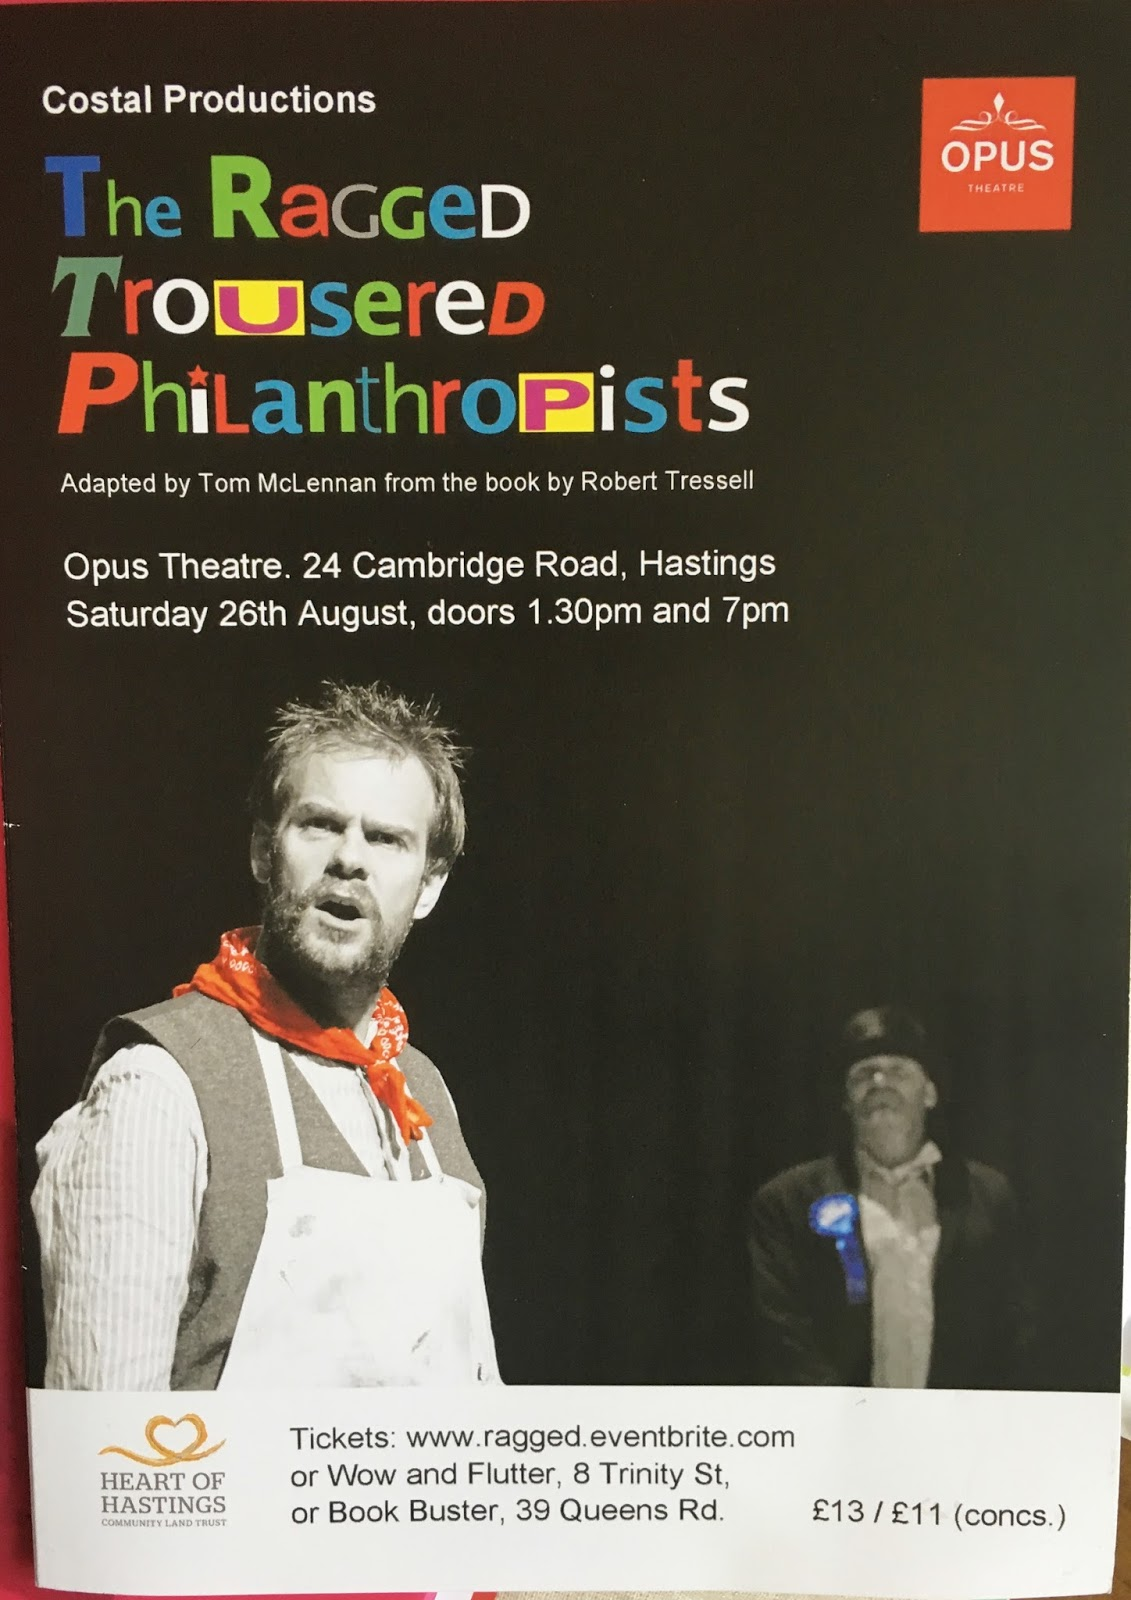 Worthy goings-on in Hastings. Ragged Trousered Philanthropists and Hastings Pride